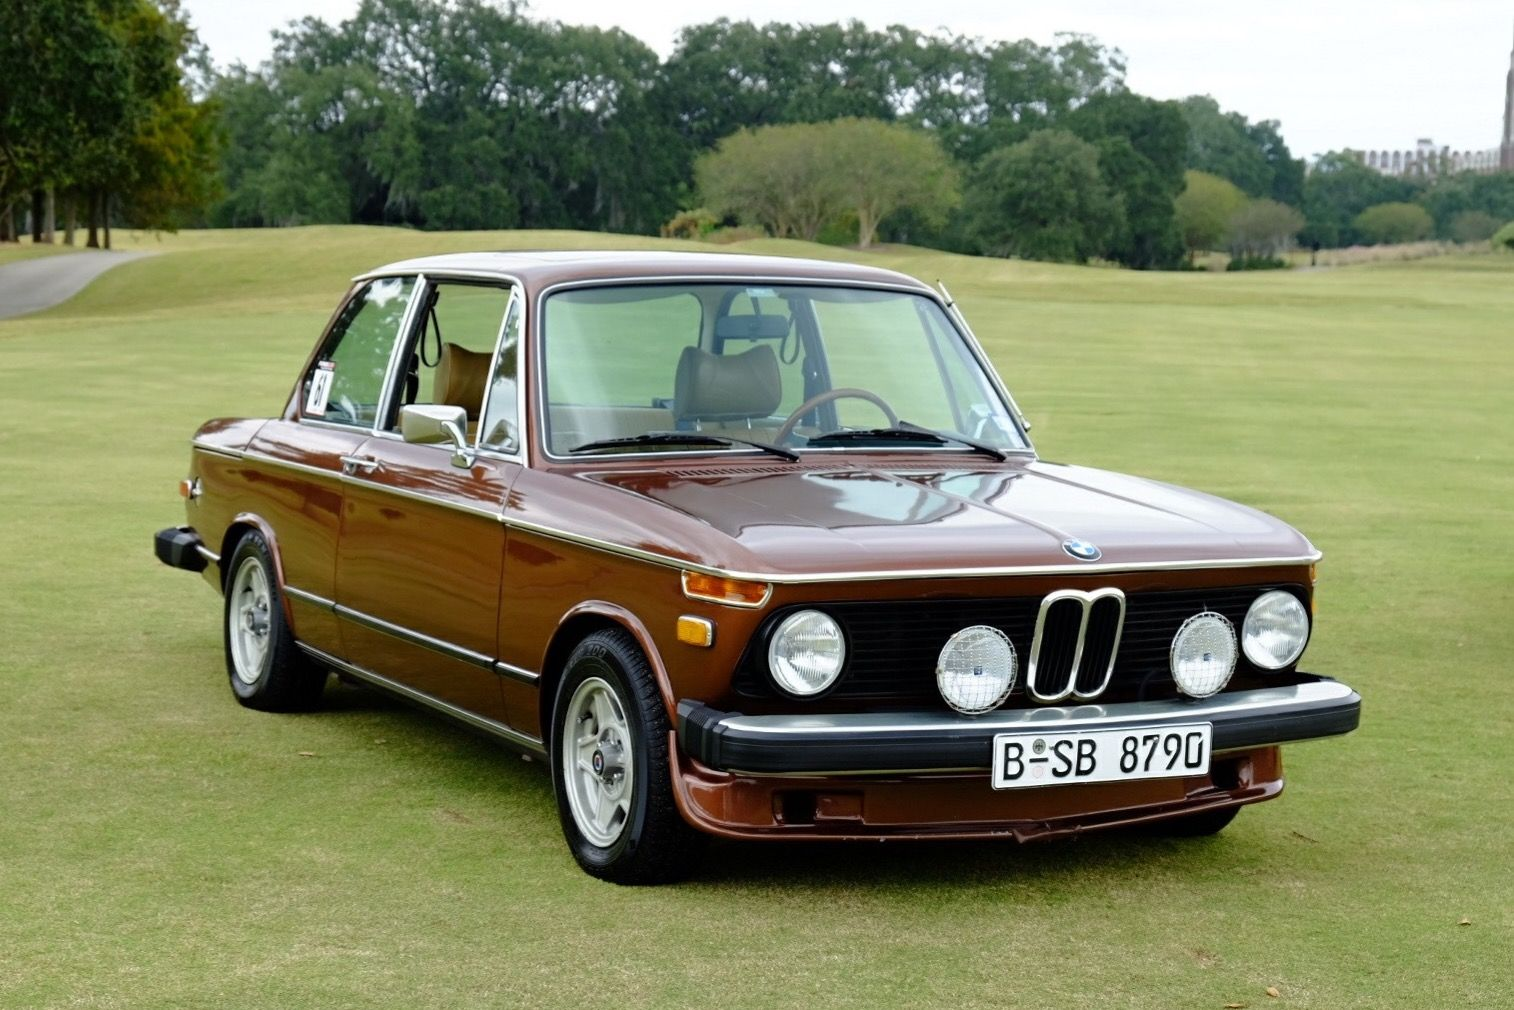 mpower bid for the chance to own a 1976 bmw 2002 at auction with rh pinterest com